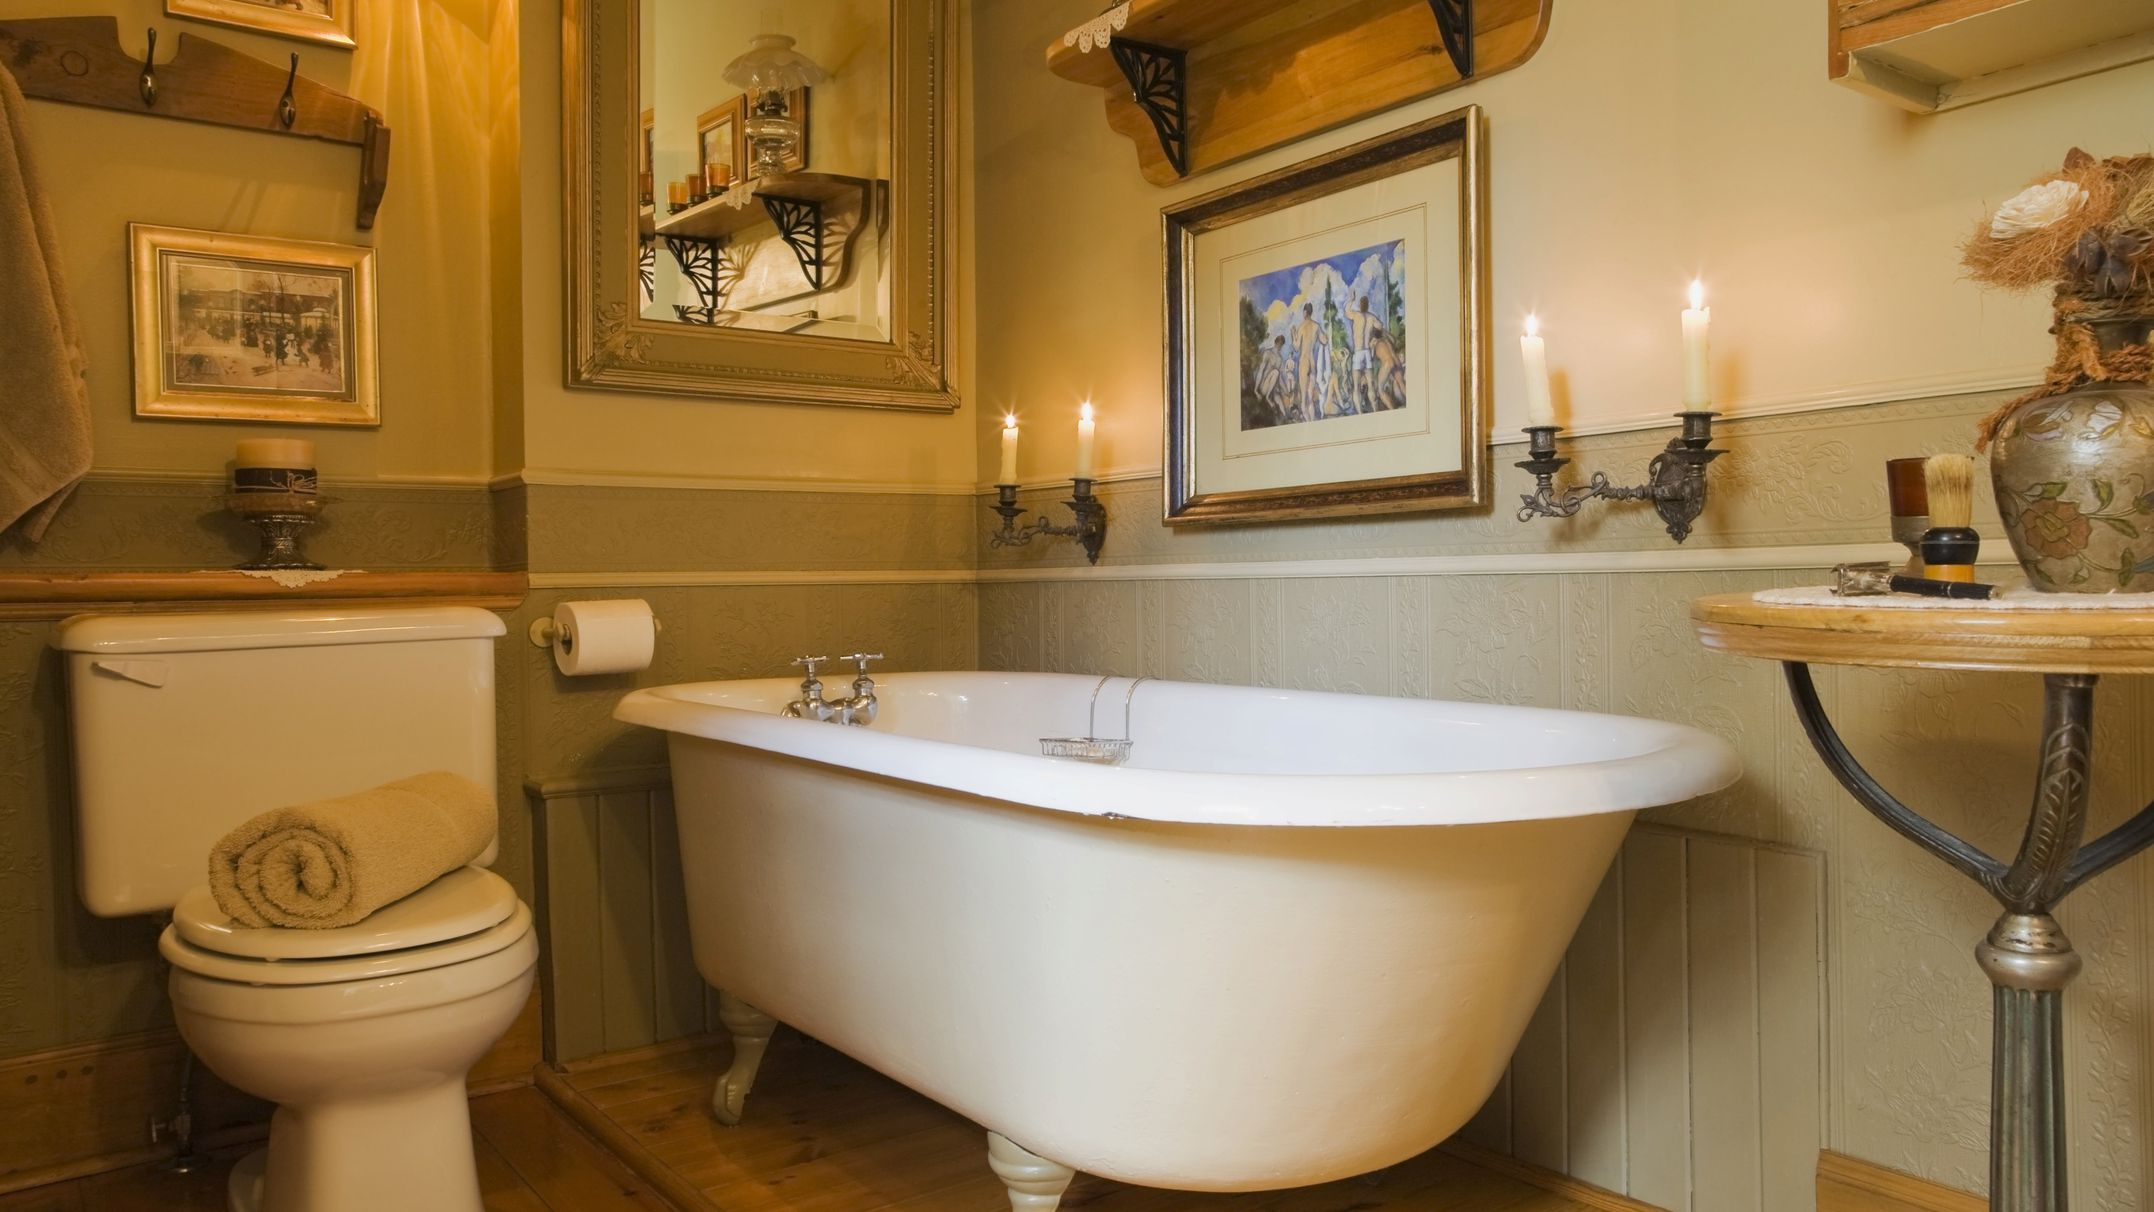 bathroom vanity tray decor.htm staging the bathroom without breaking the bank  staging the bathroom without breaking